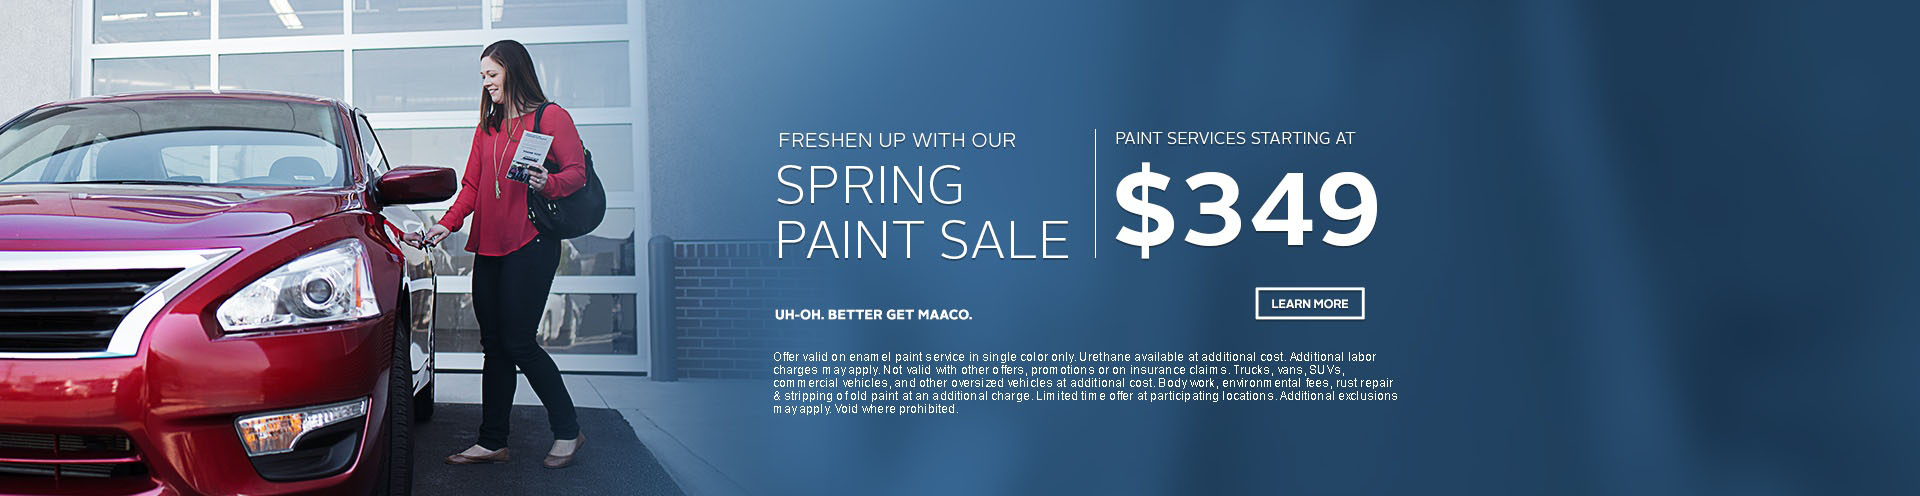 Maaco: Spring Paint Sale Starting at: $349, click Learn More for further details.